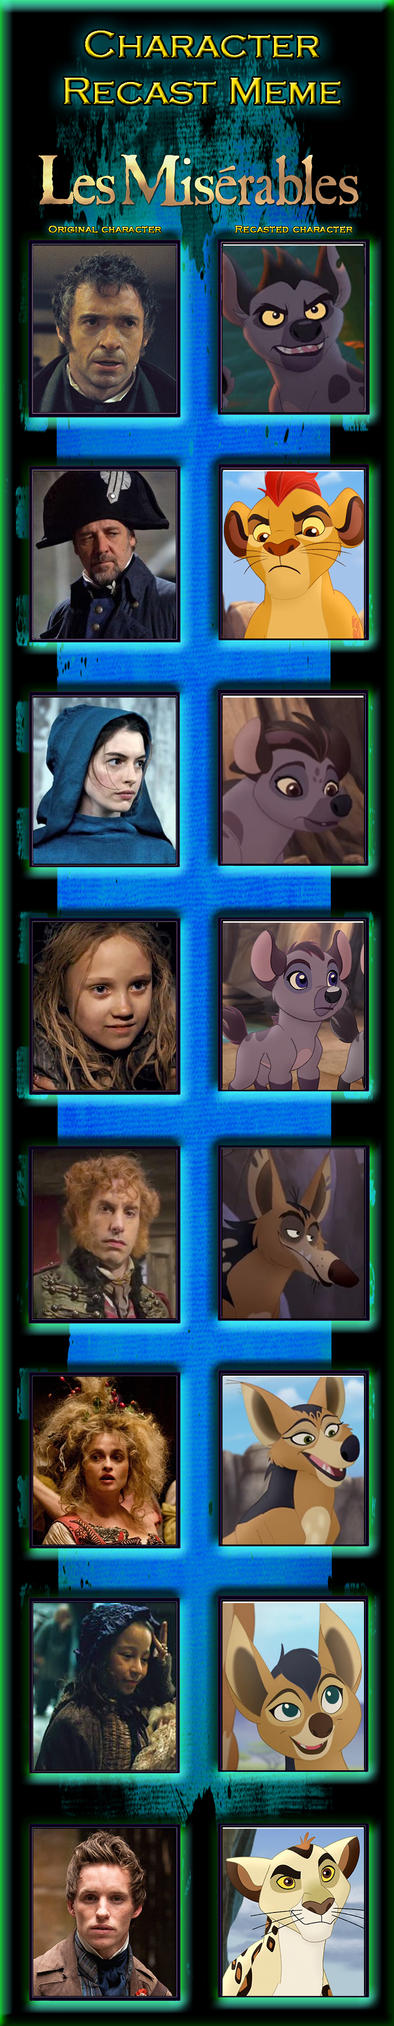 Les Miserables recast w Lion Guard characters by s233220